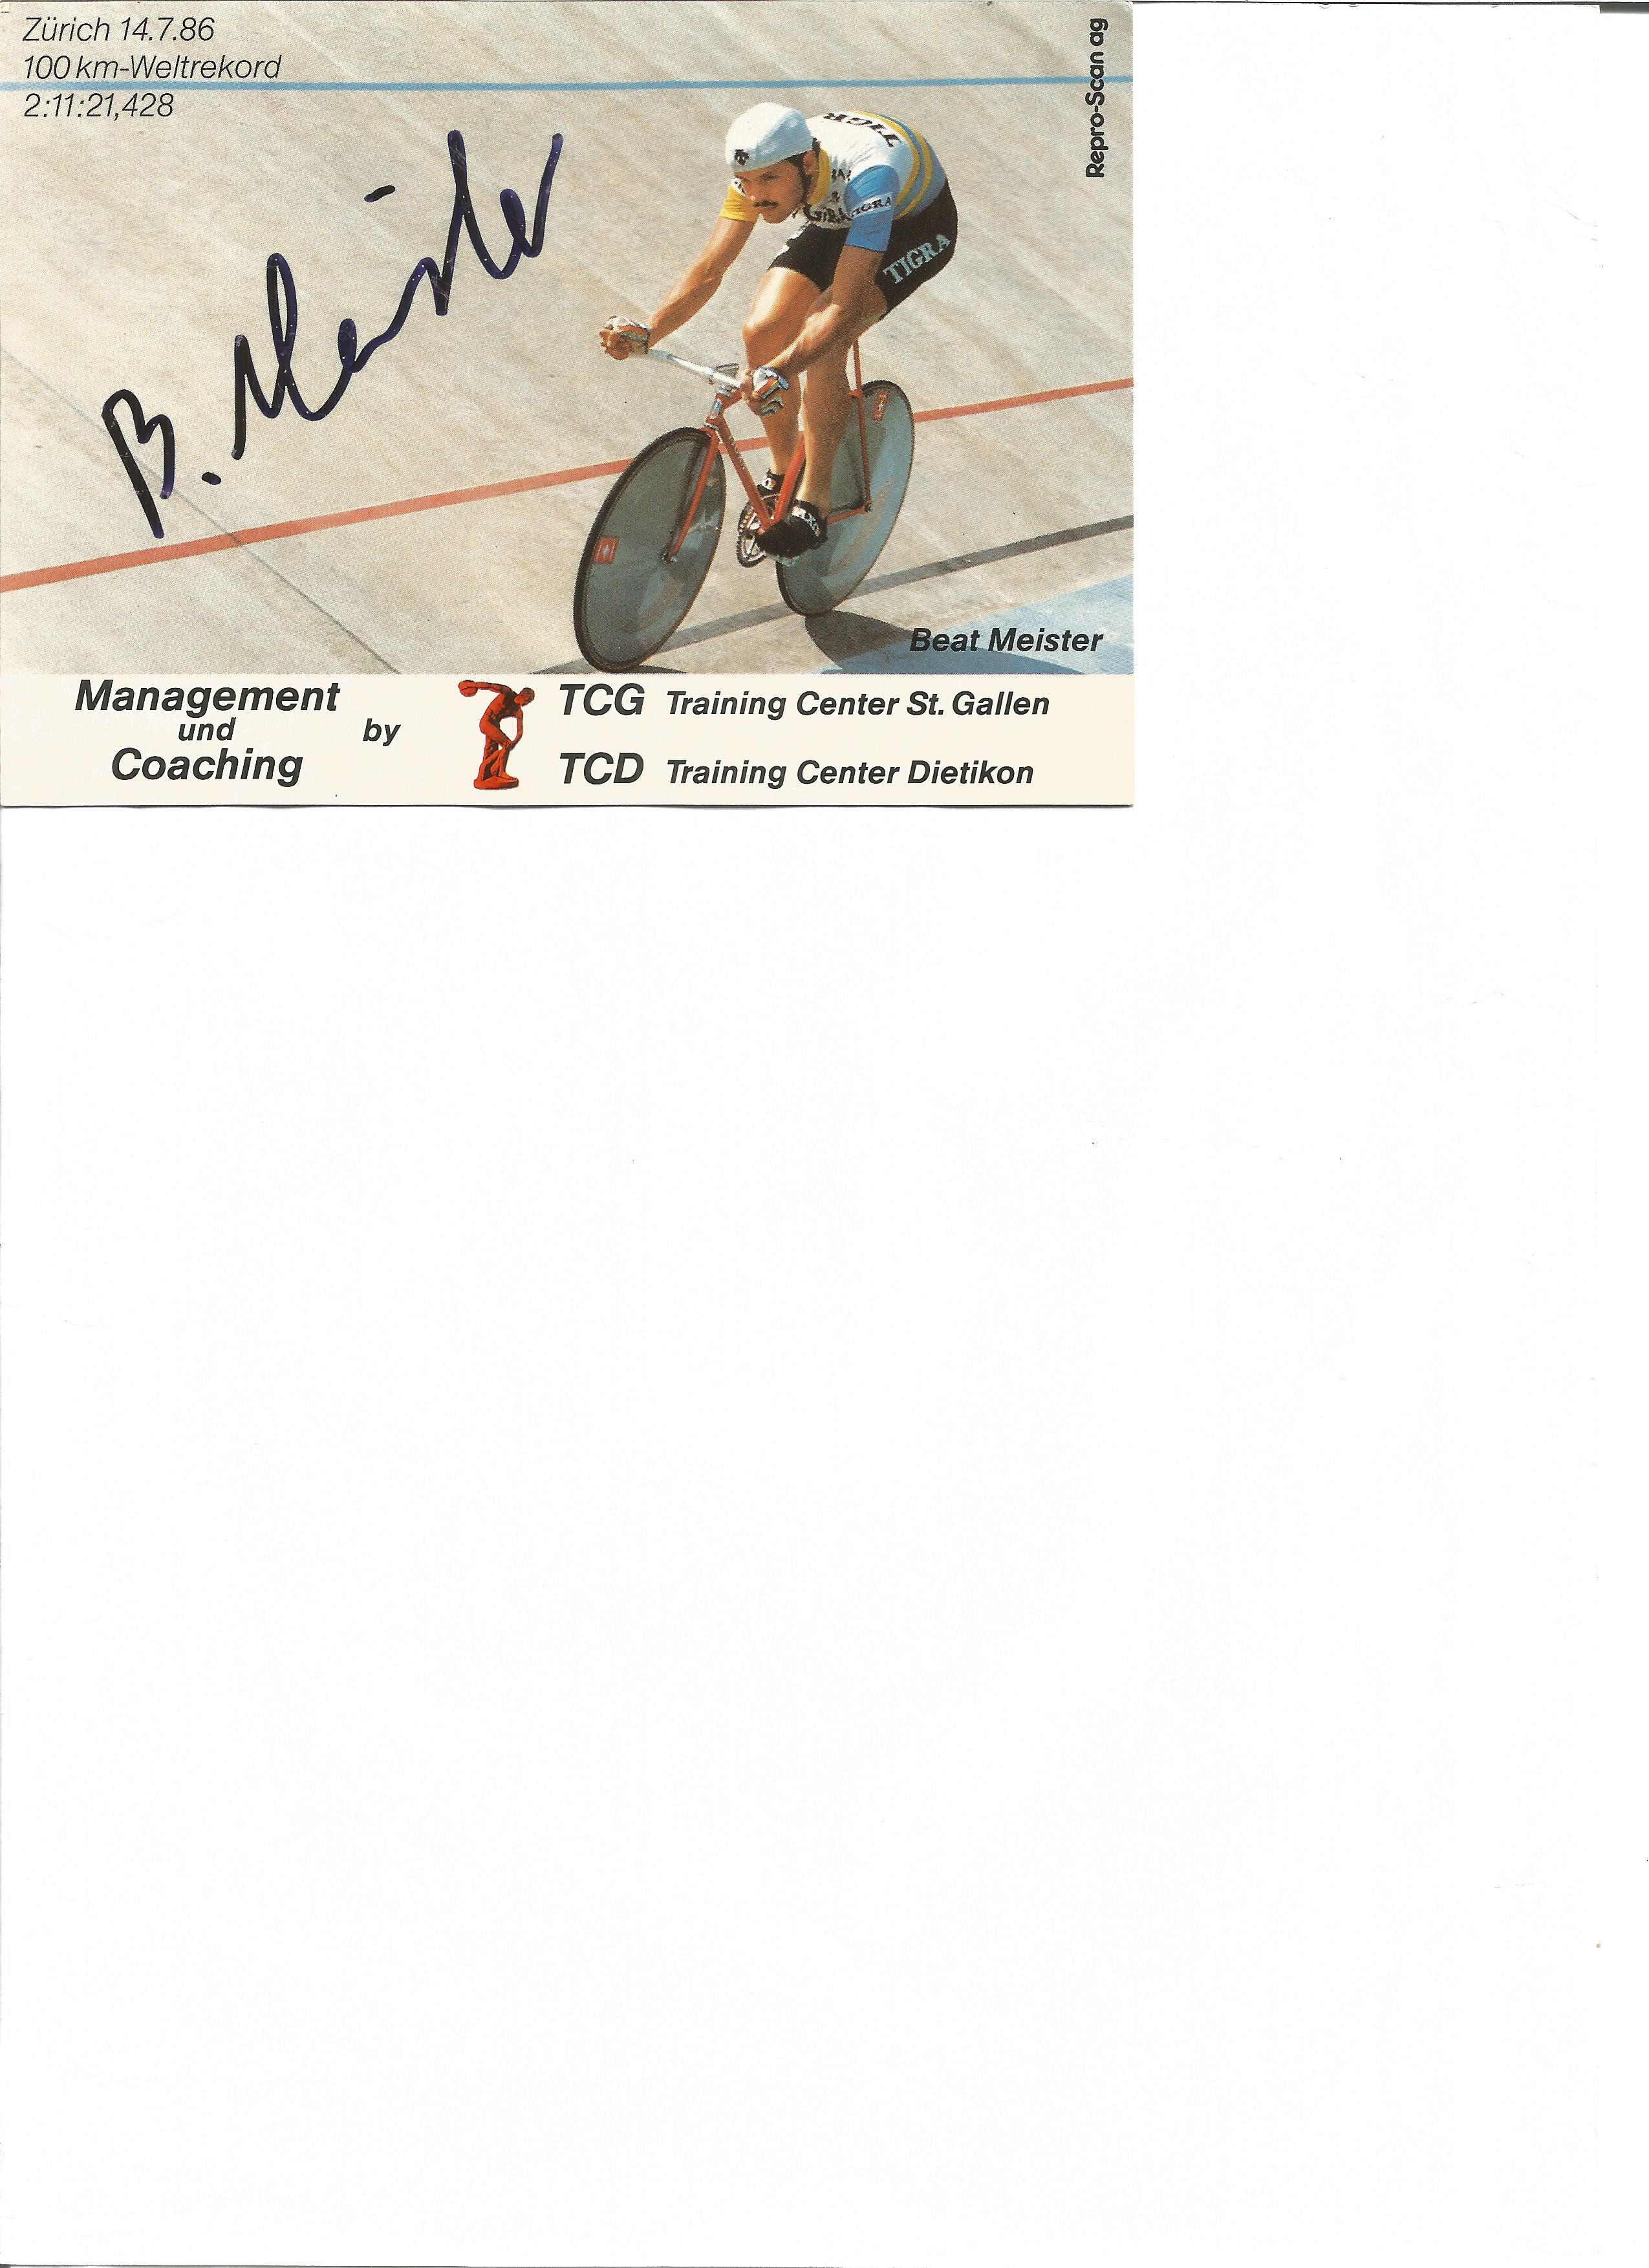 Lot 154 - Cycling Beat Meister signed 6 x 4 inch colour promo card. Beat Meister born 22 September 1965 is a